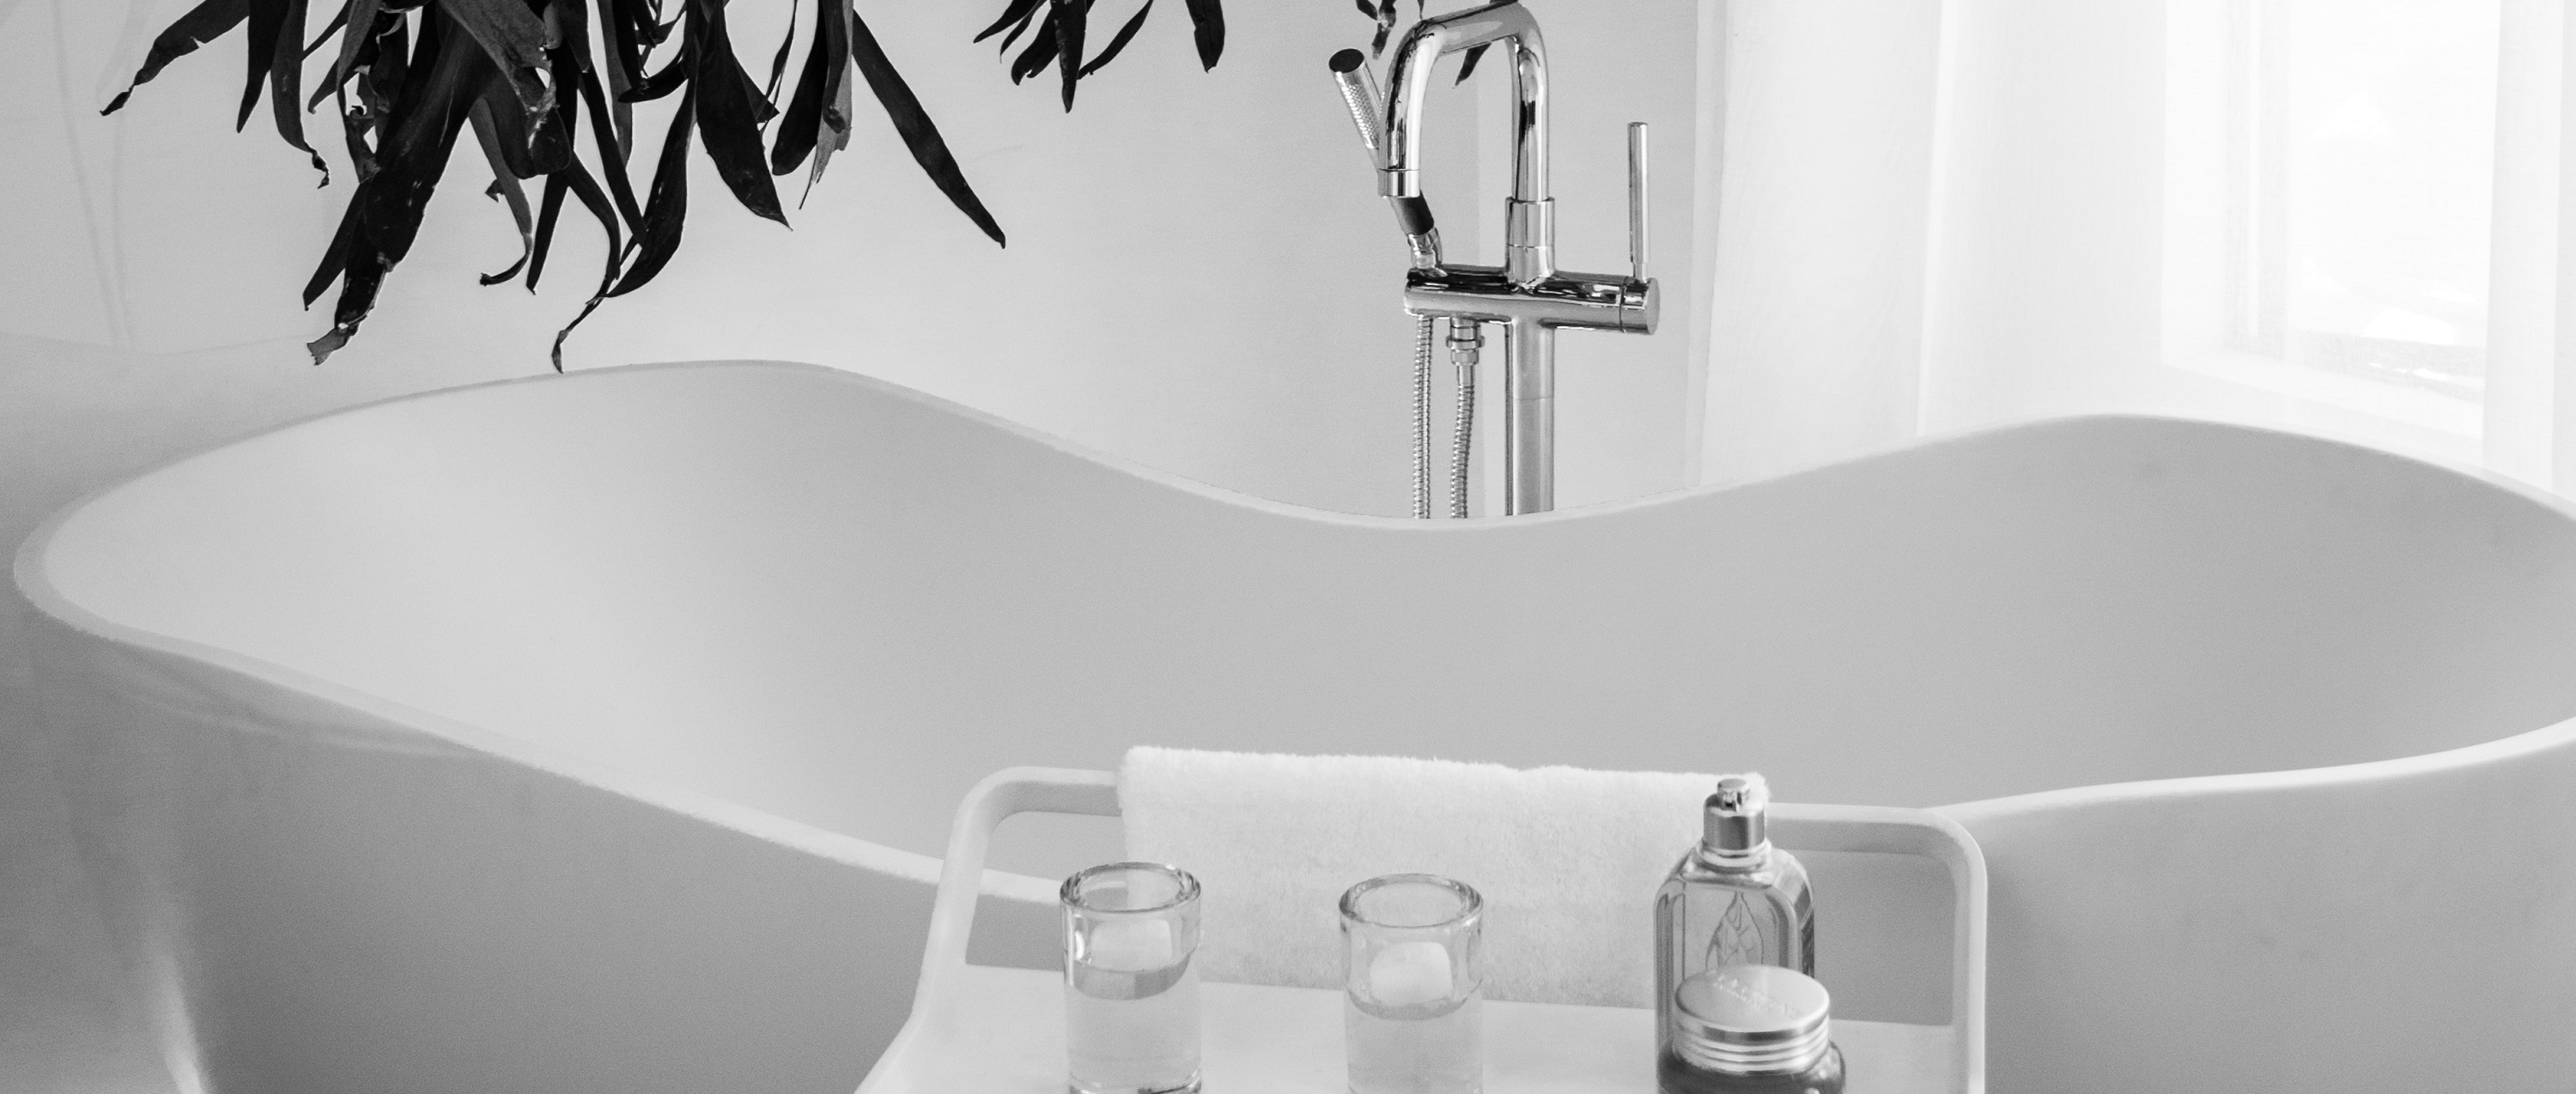 Bathroom Accessories Hotel Bathroom Accessories That Influence Repeat Business In 2019